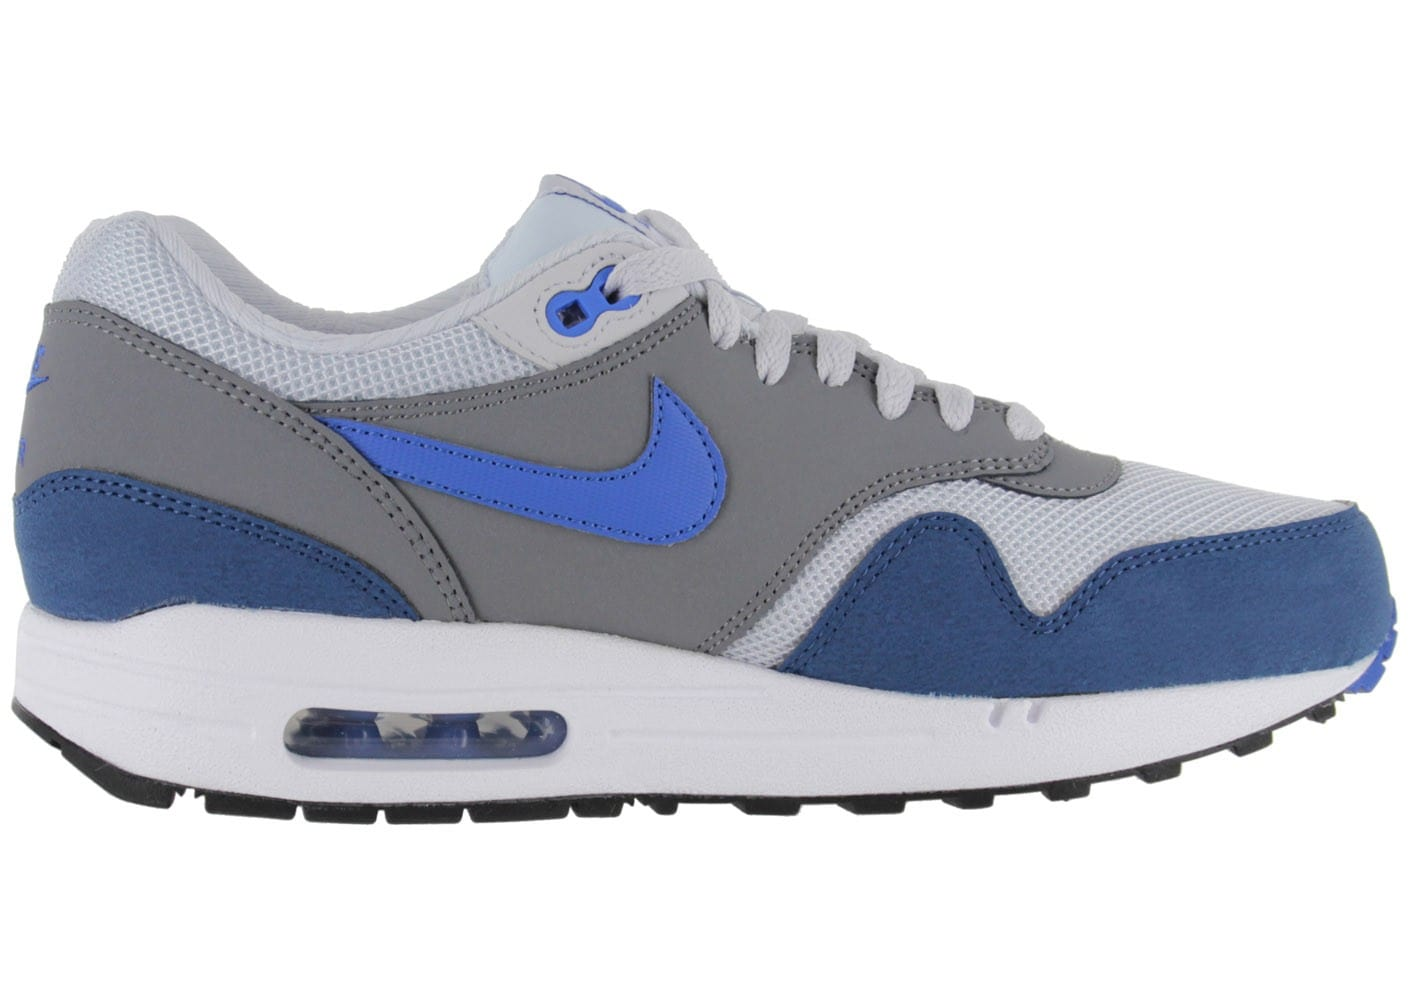 nike air max 1 premium blanc bleu chaussures baskets homme chausport. Black Bedroom Furniture Sets. Home Design Ideas